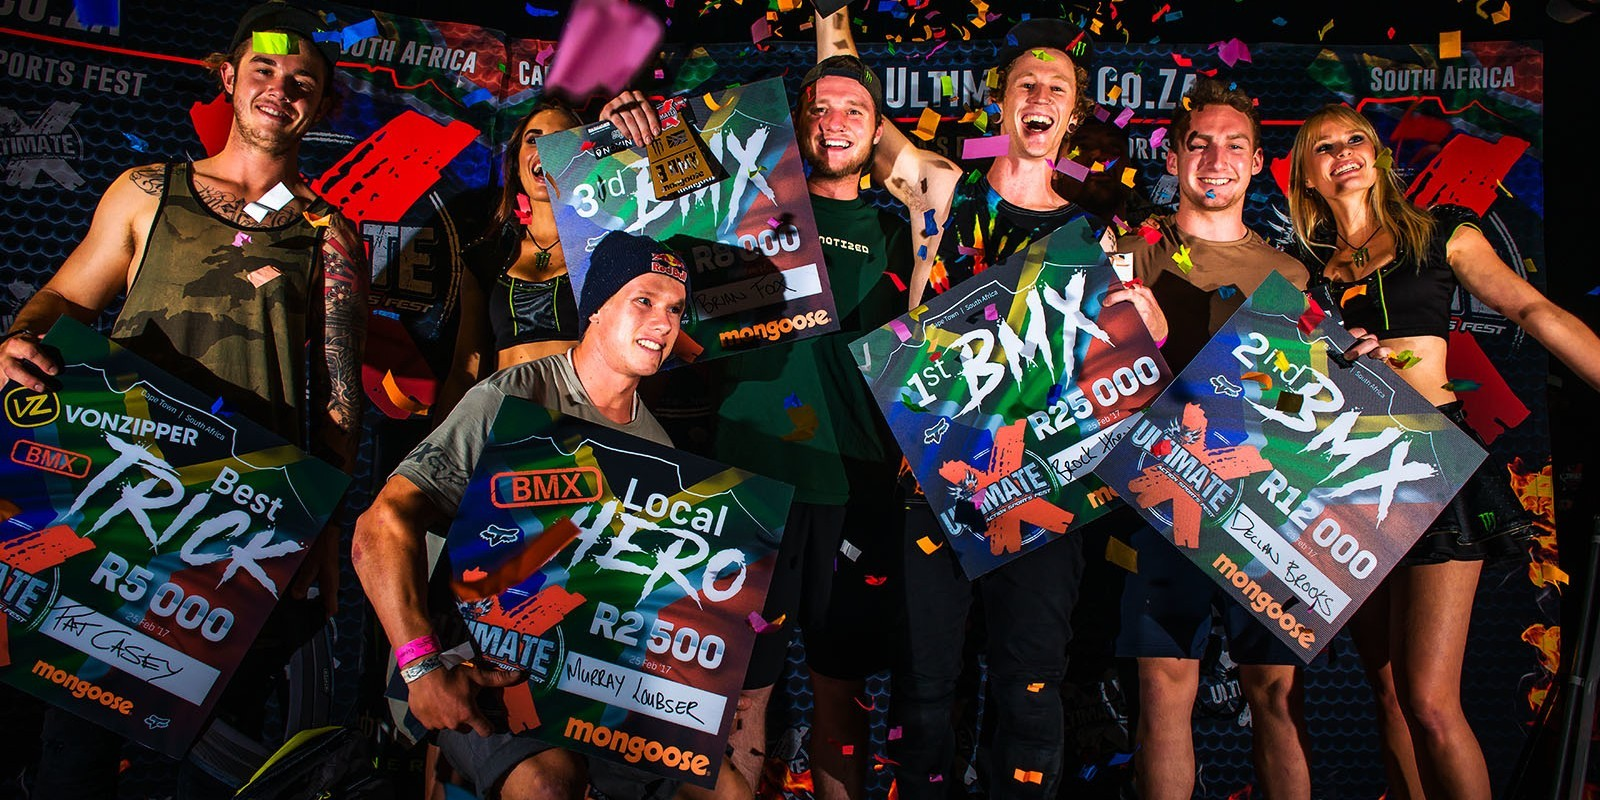 Ultimate X Action Sports Fest - South Africa - 2017 - BMX Podium